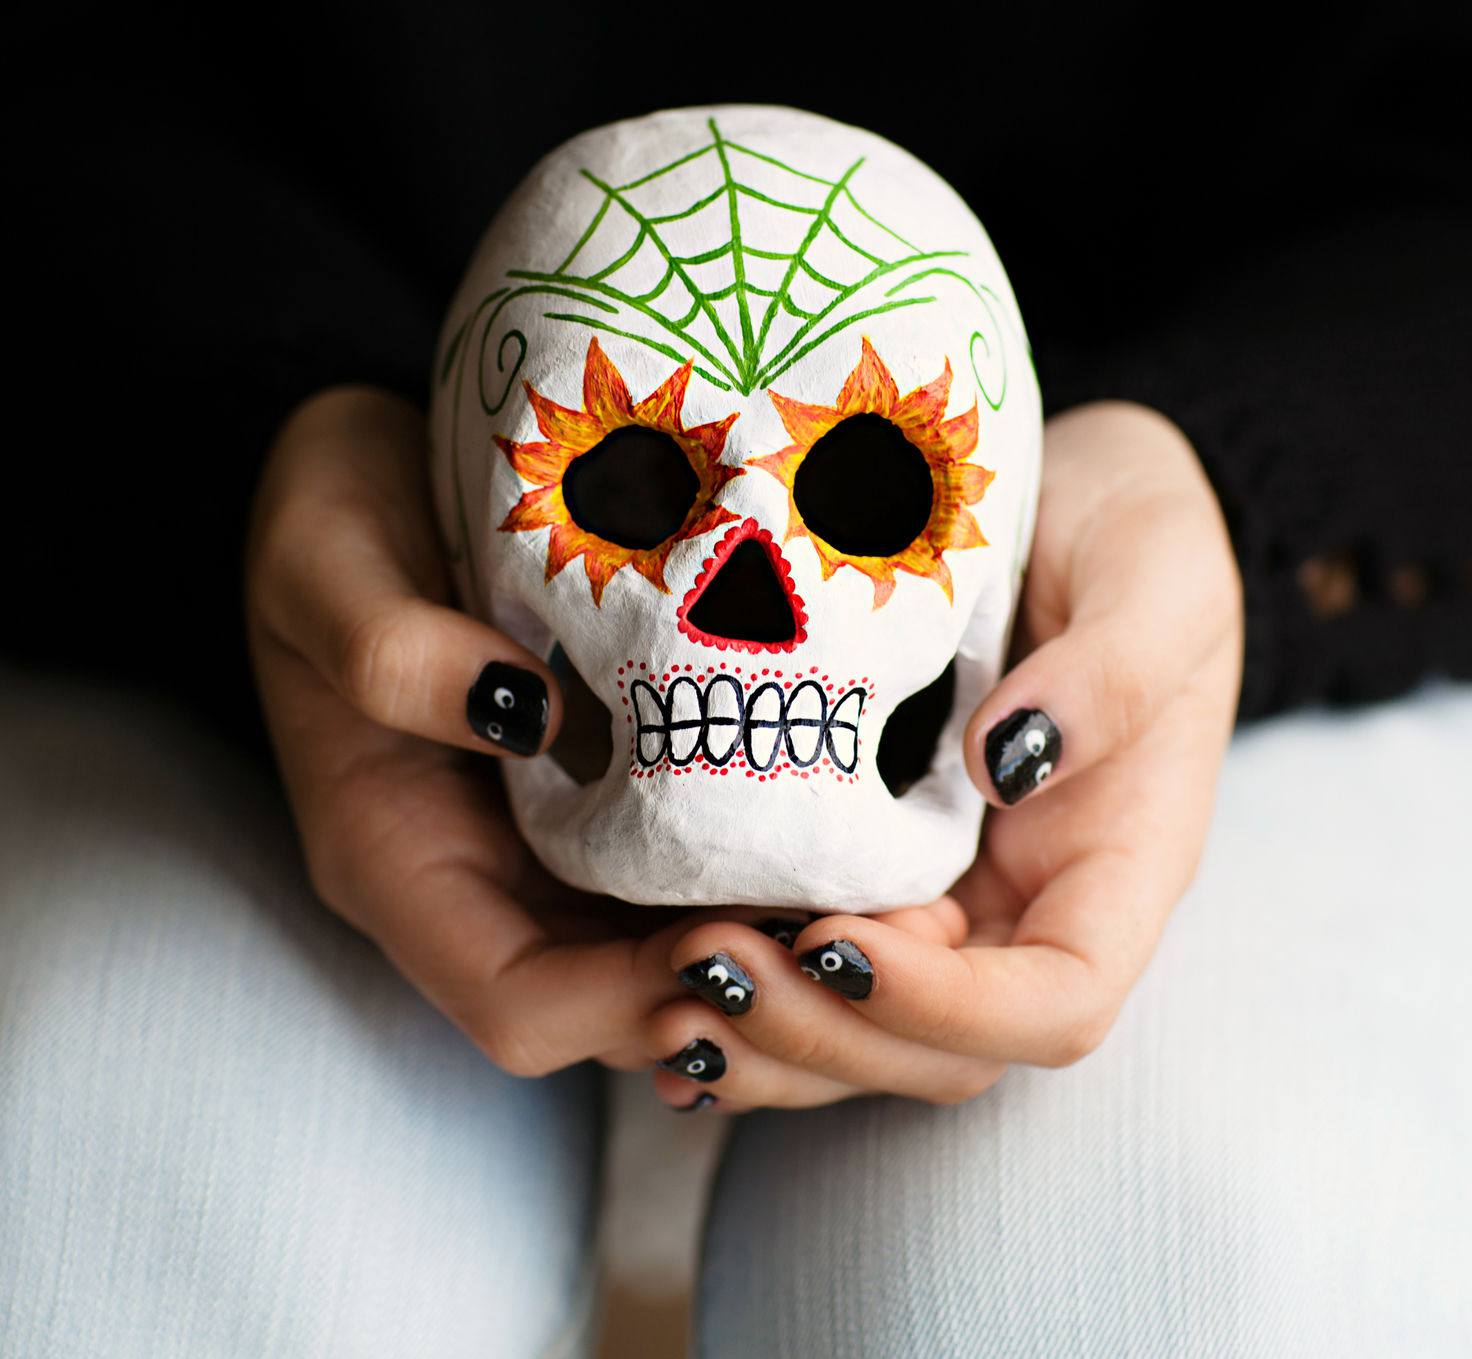 c58f8b1f8 Learn About Sugar Skulls and the History of 'Day of the Dead'